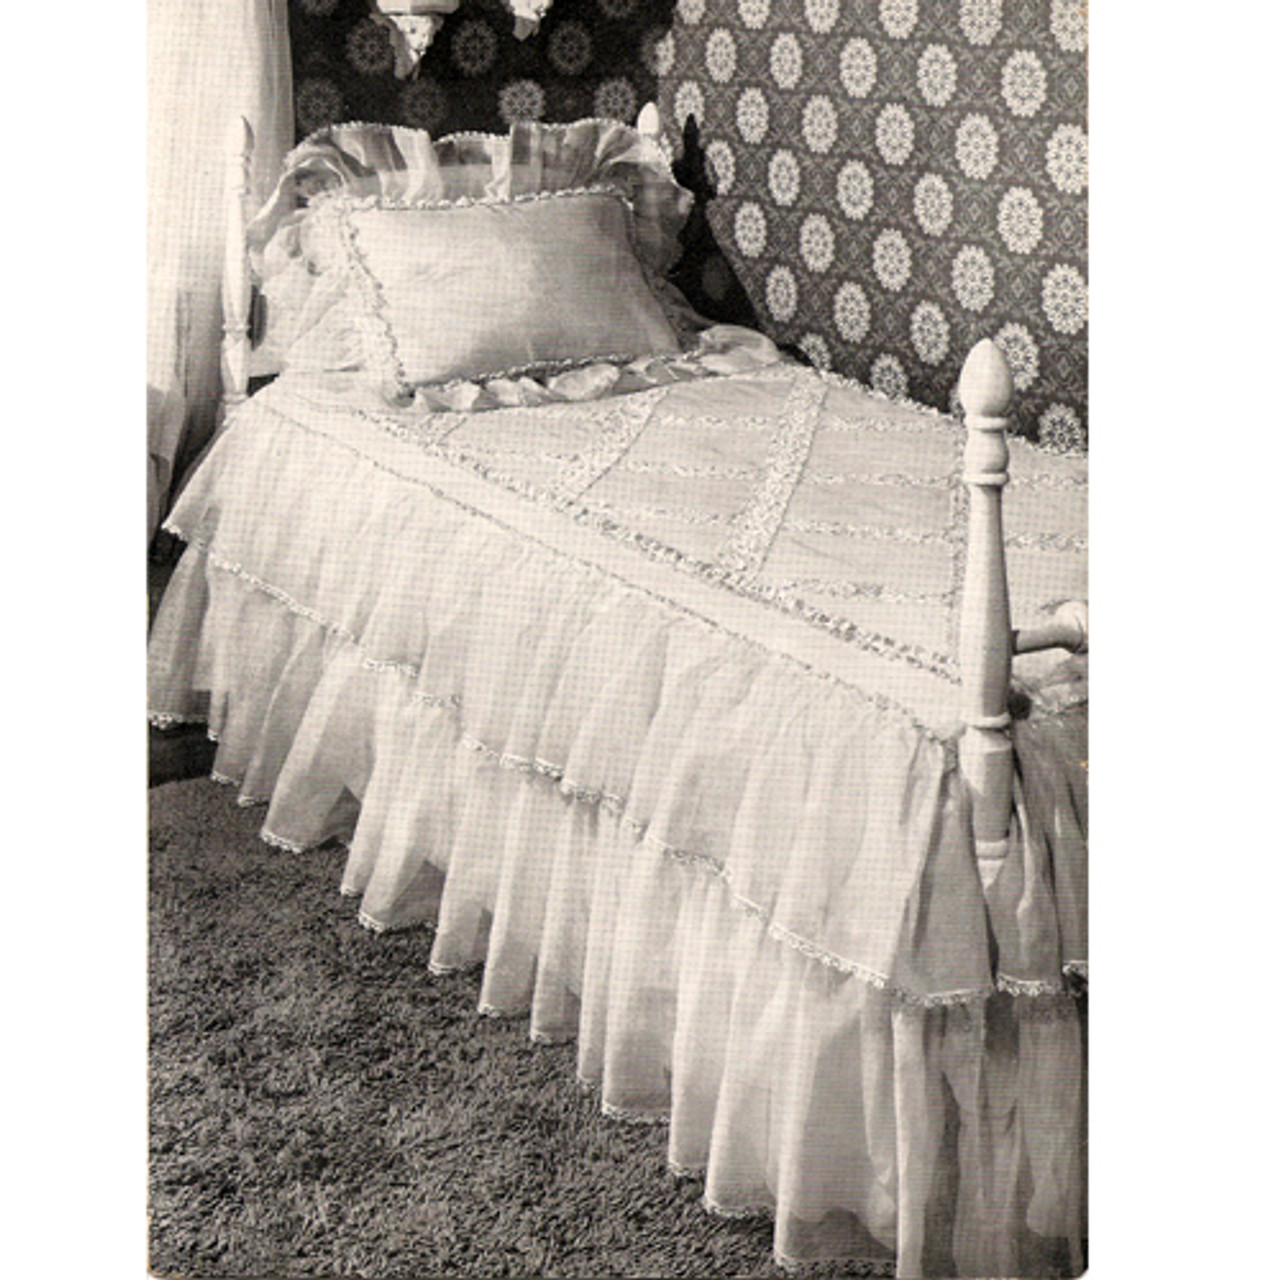 Frilly Crocheted Bedspread Pattern, Vintage 1950s